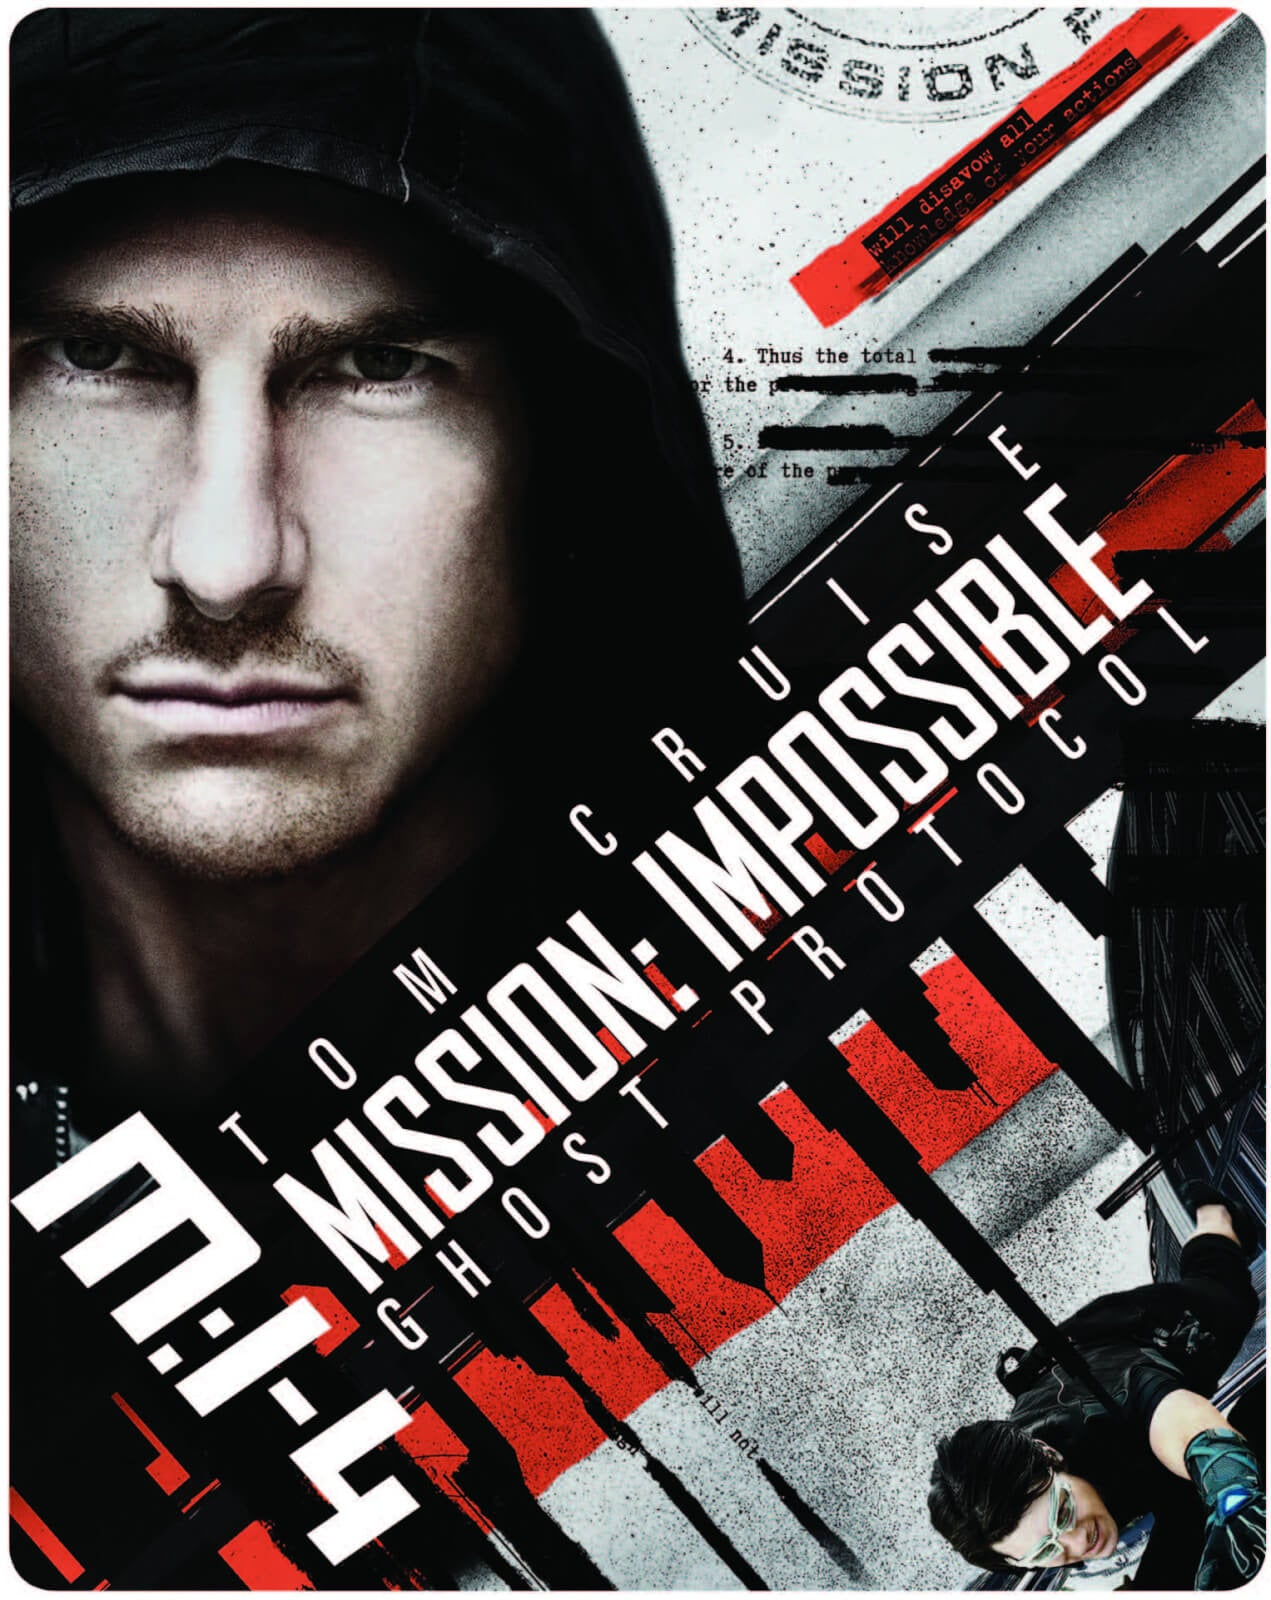 Mission Impossible Ghost Protocol (2011) Vudu HD redemption only